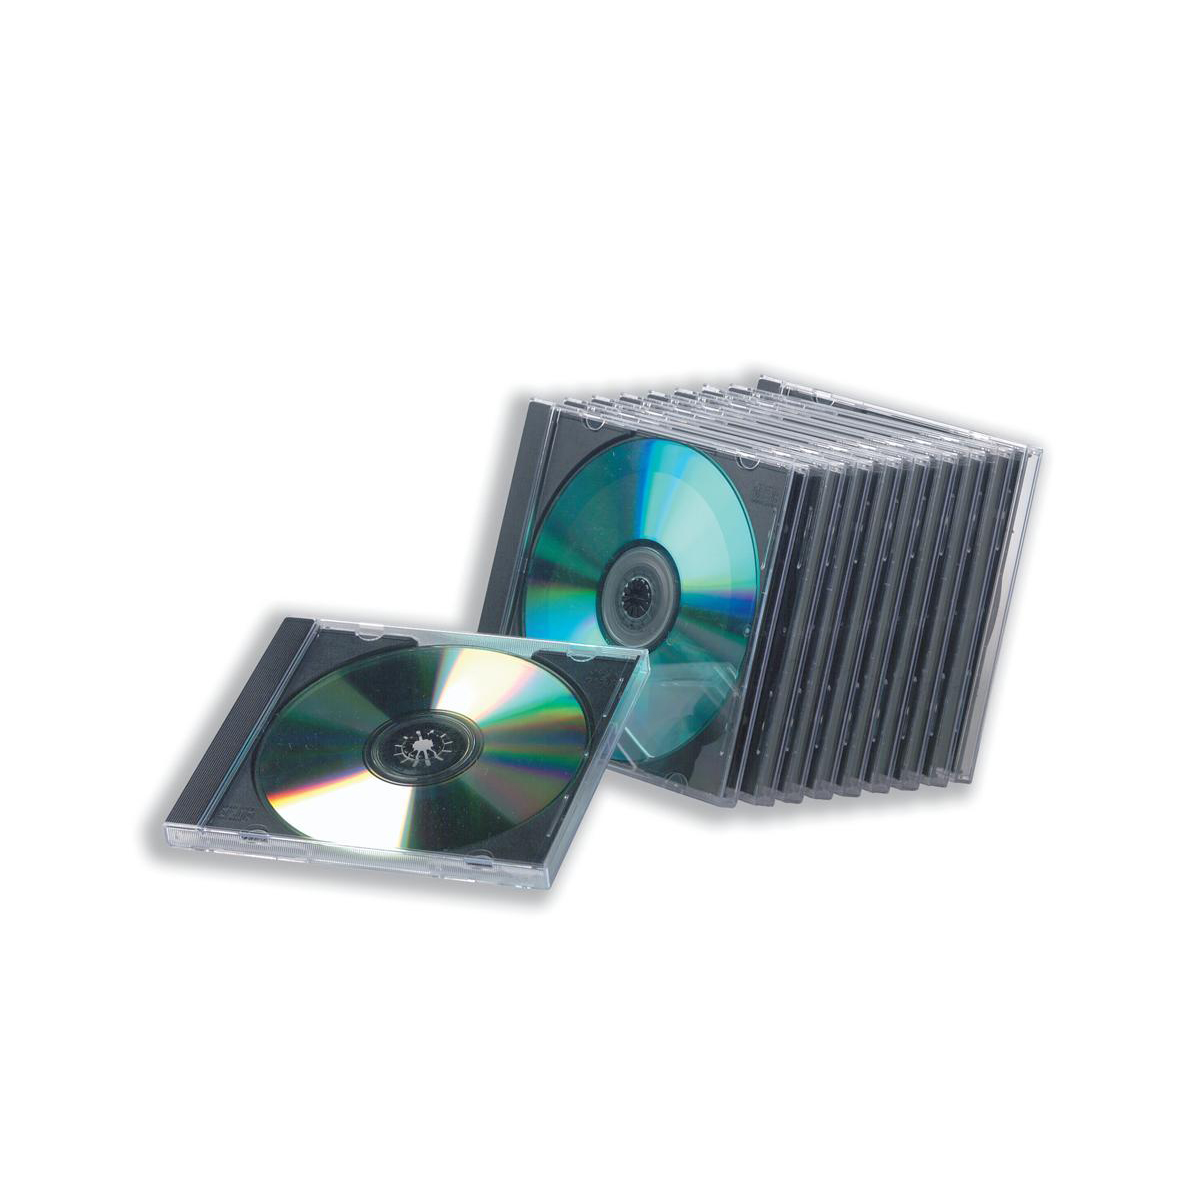 Compact disk cases CD Jewel Case with High Impact Protection Plastic Clear [Pack 10]